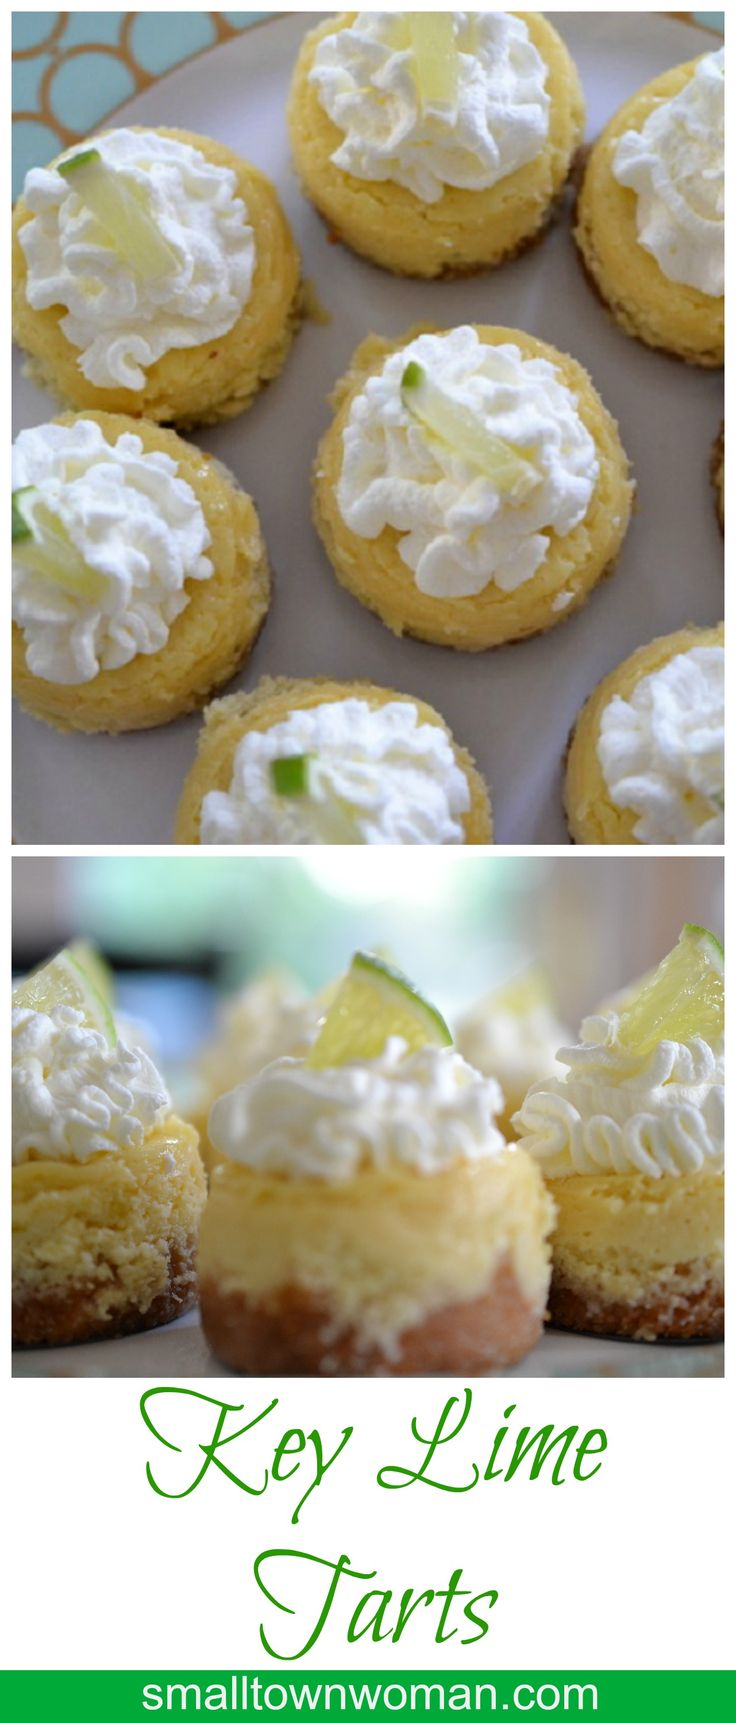 These are delicious and relatively easy to make.